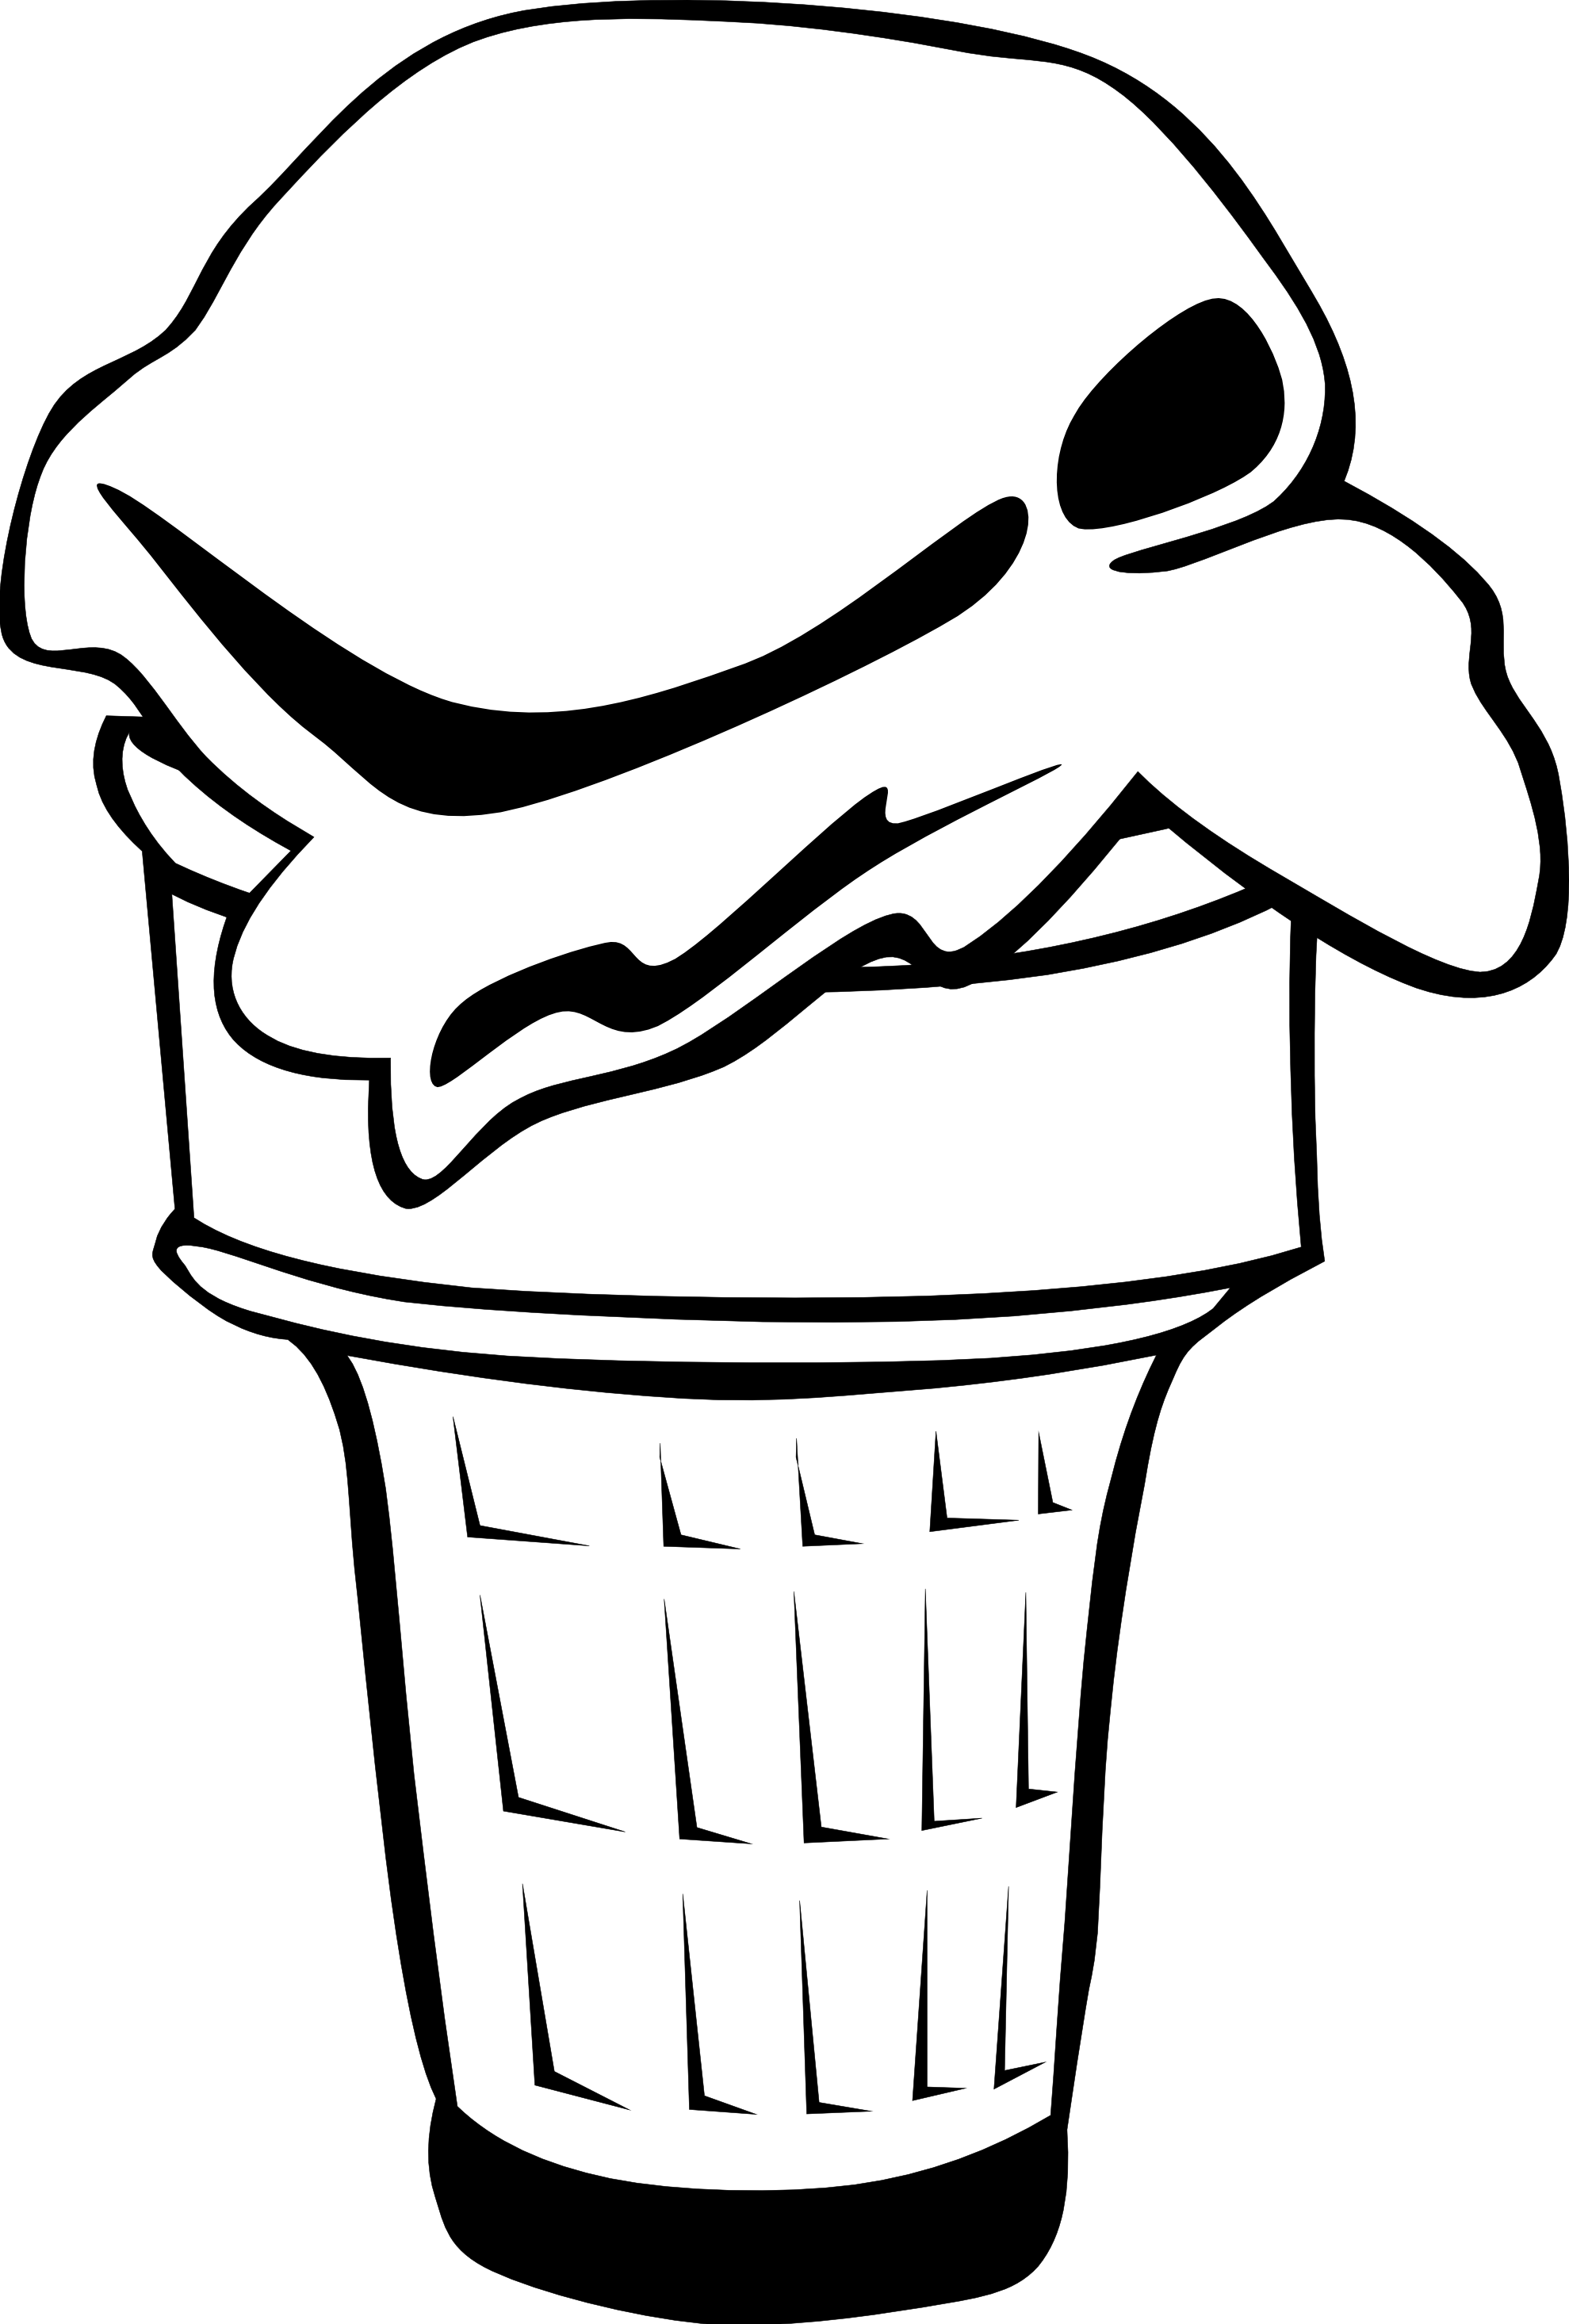 clip art library  collection of high. Ice cream shop clipart black and white